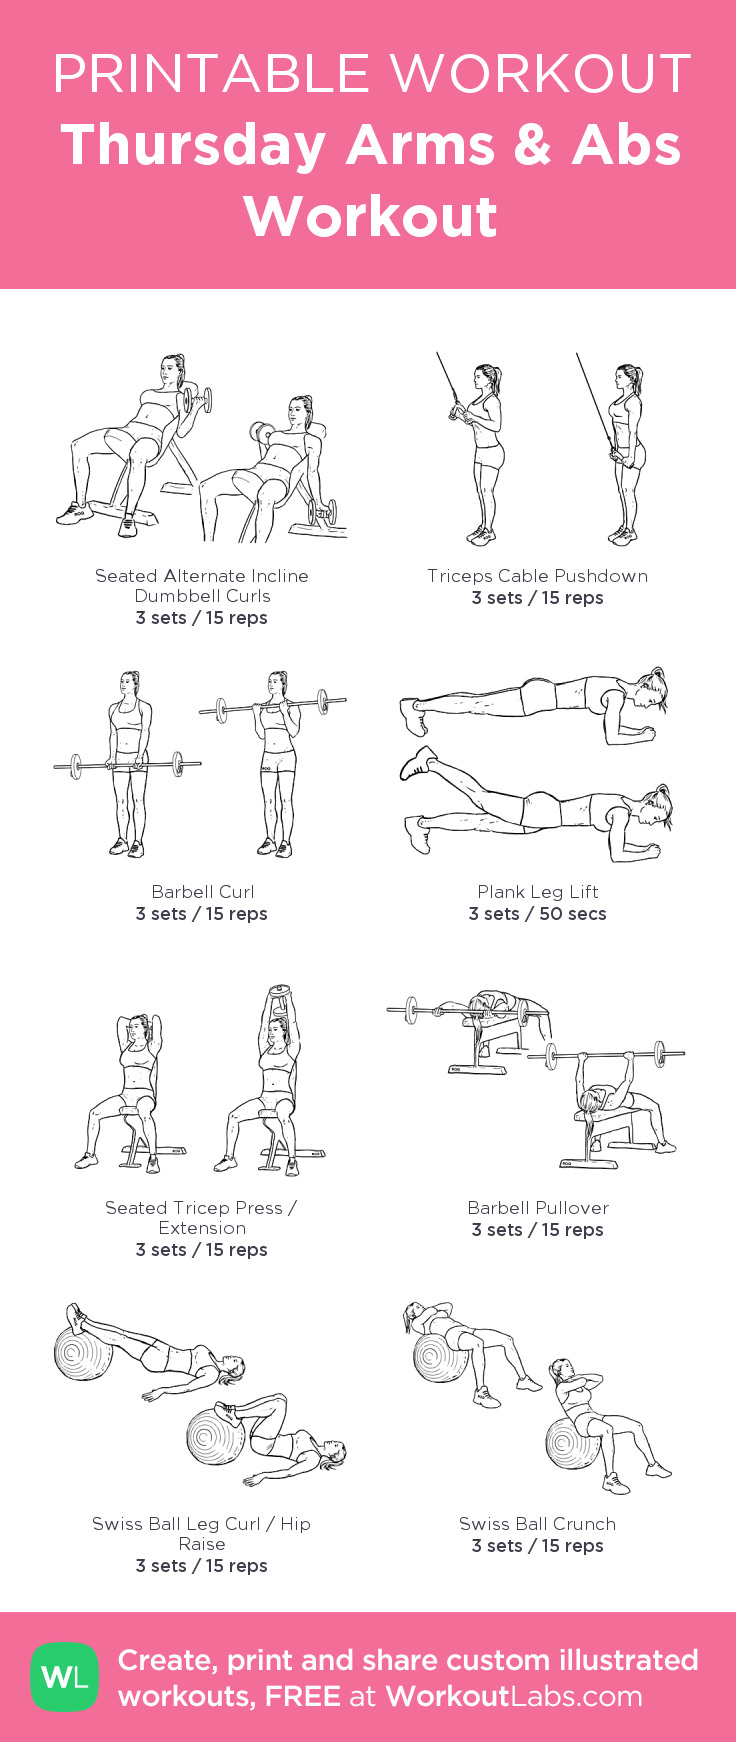 Thursday Arms & Abs Workout: my custom printable workout by